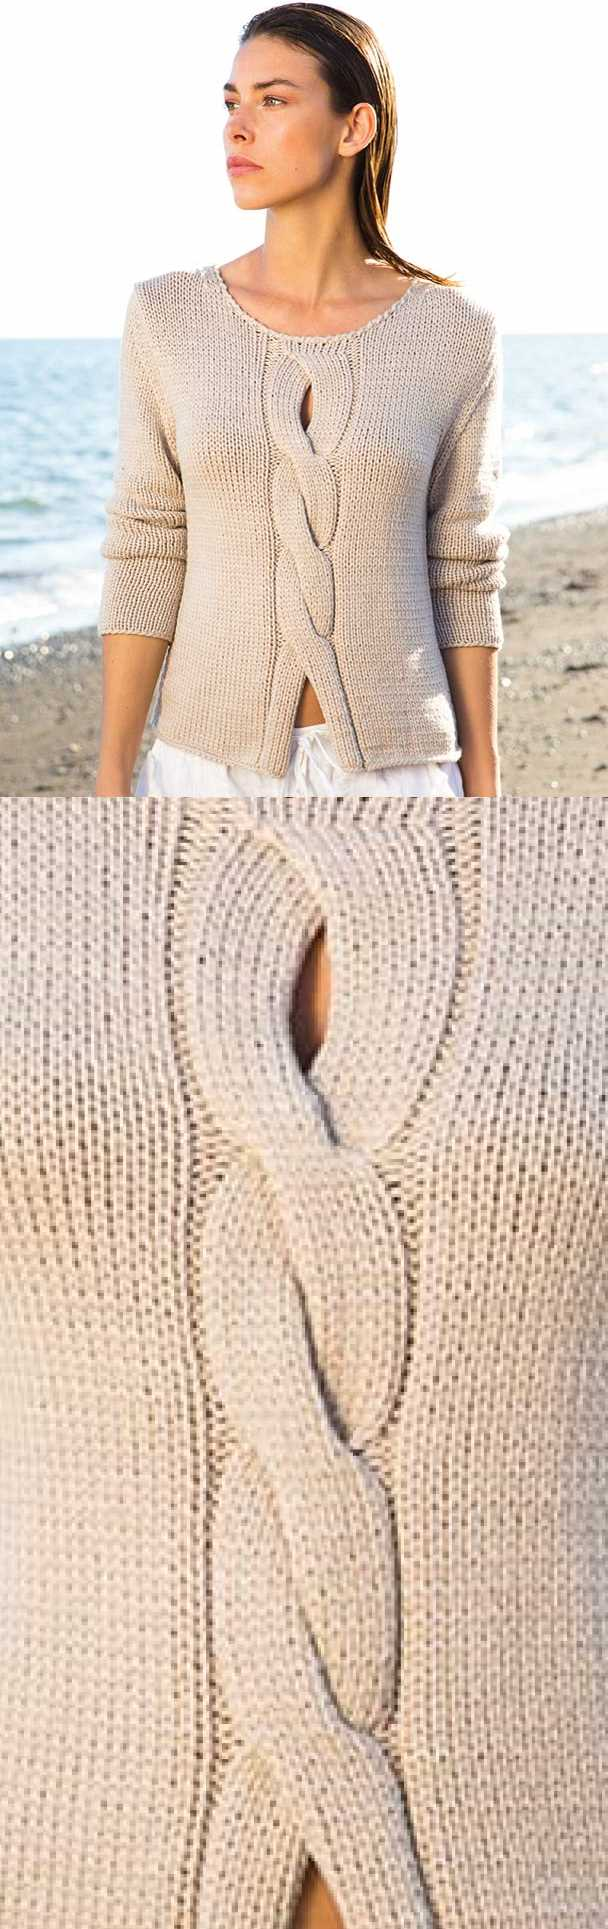 Ladies Top Free Knitting Pattern with a Center Cable ⋆ Knitting Bee